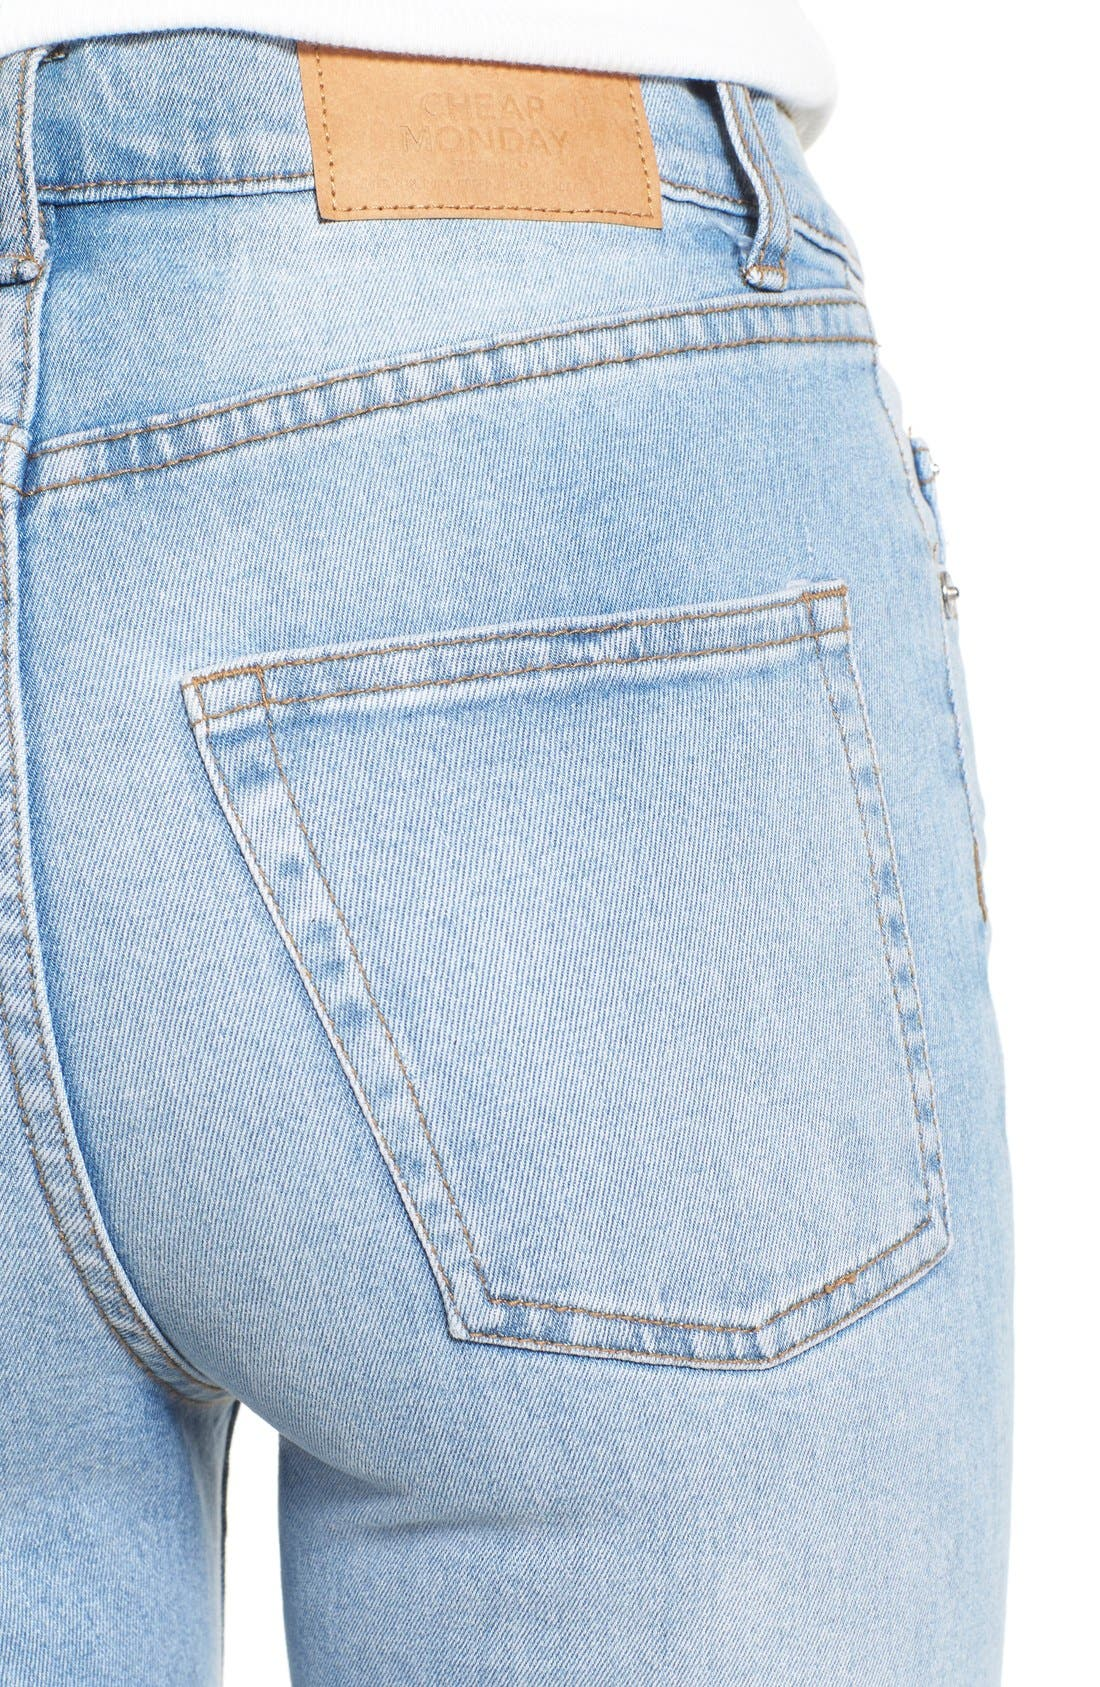 Alternate Image 4  - Cheap Monday 'Second Skin' Skinny Jeans (Stonewash Blue)